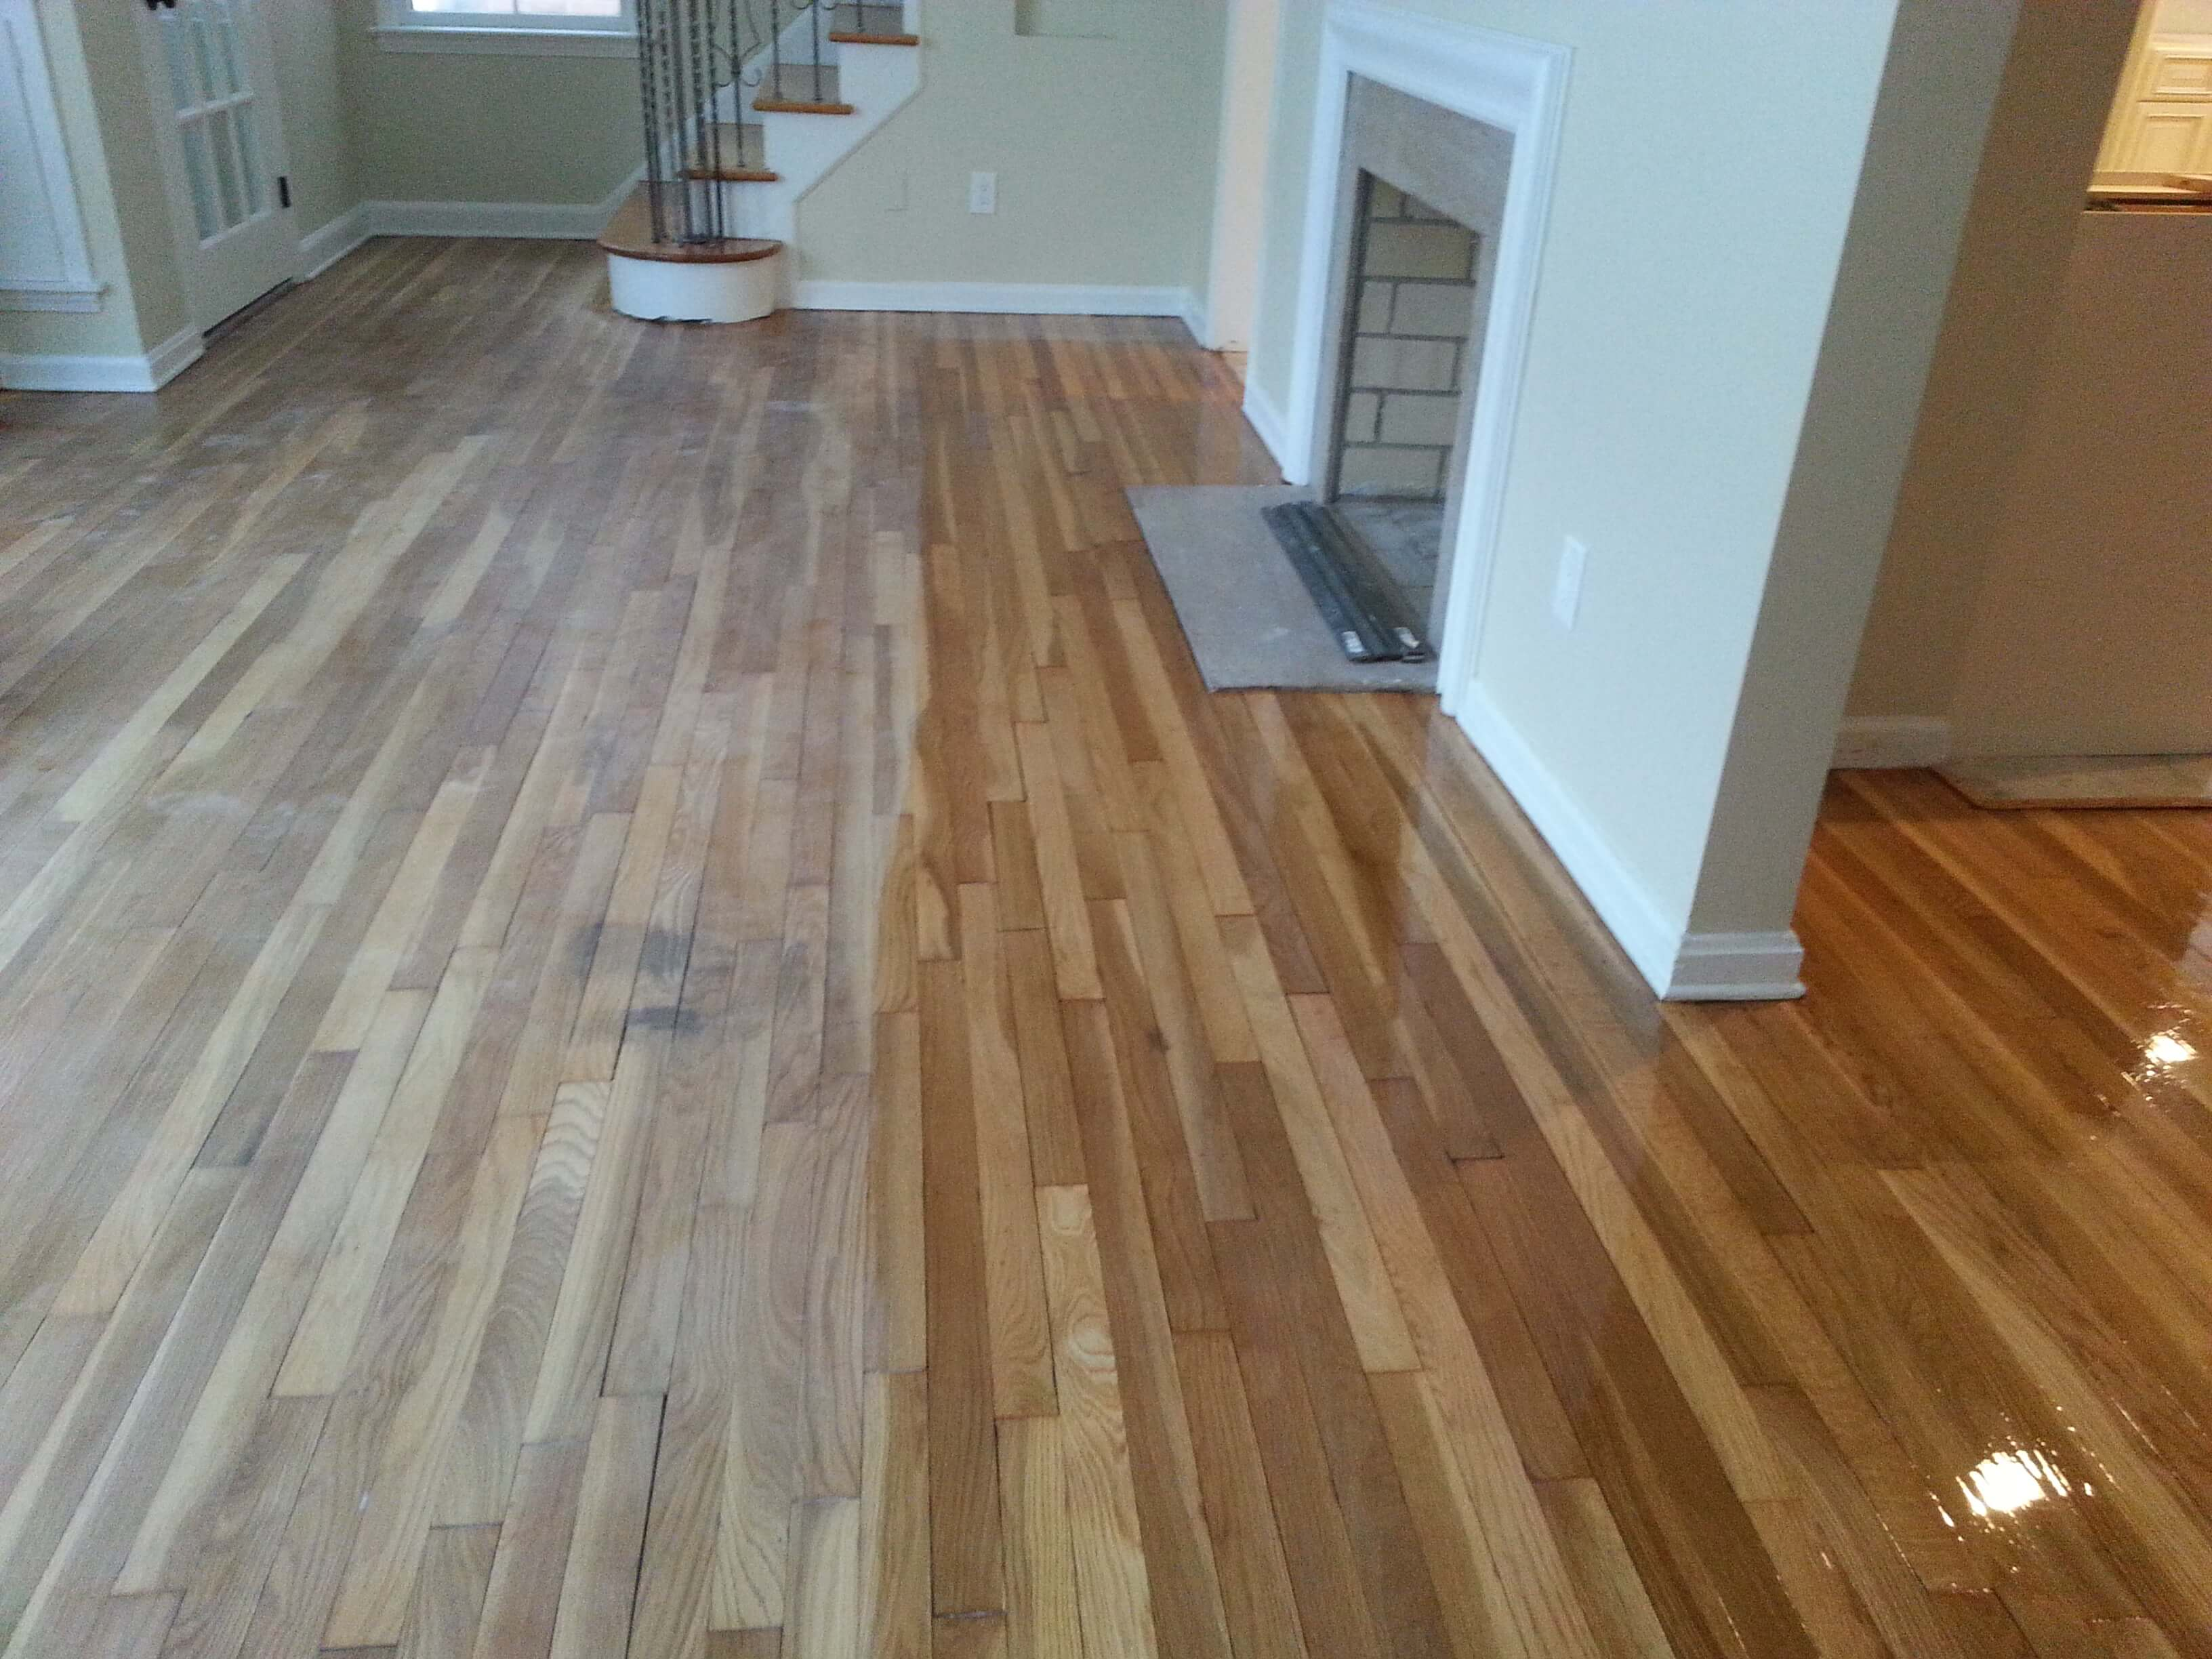 Newly finished hardwood floors.